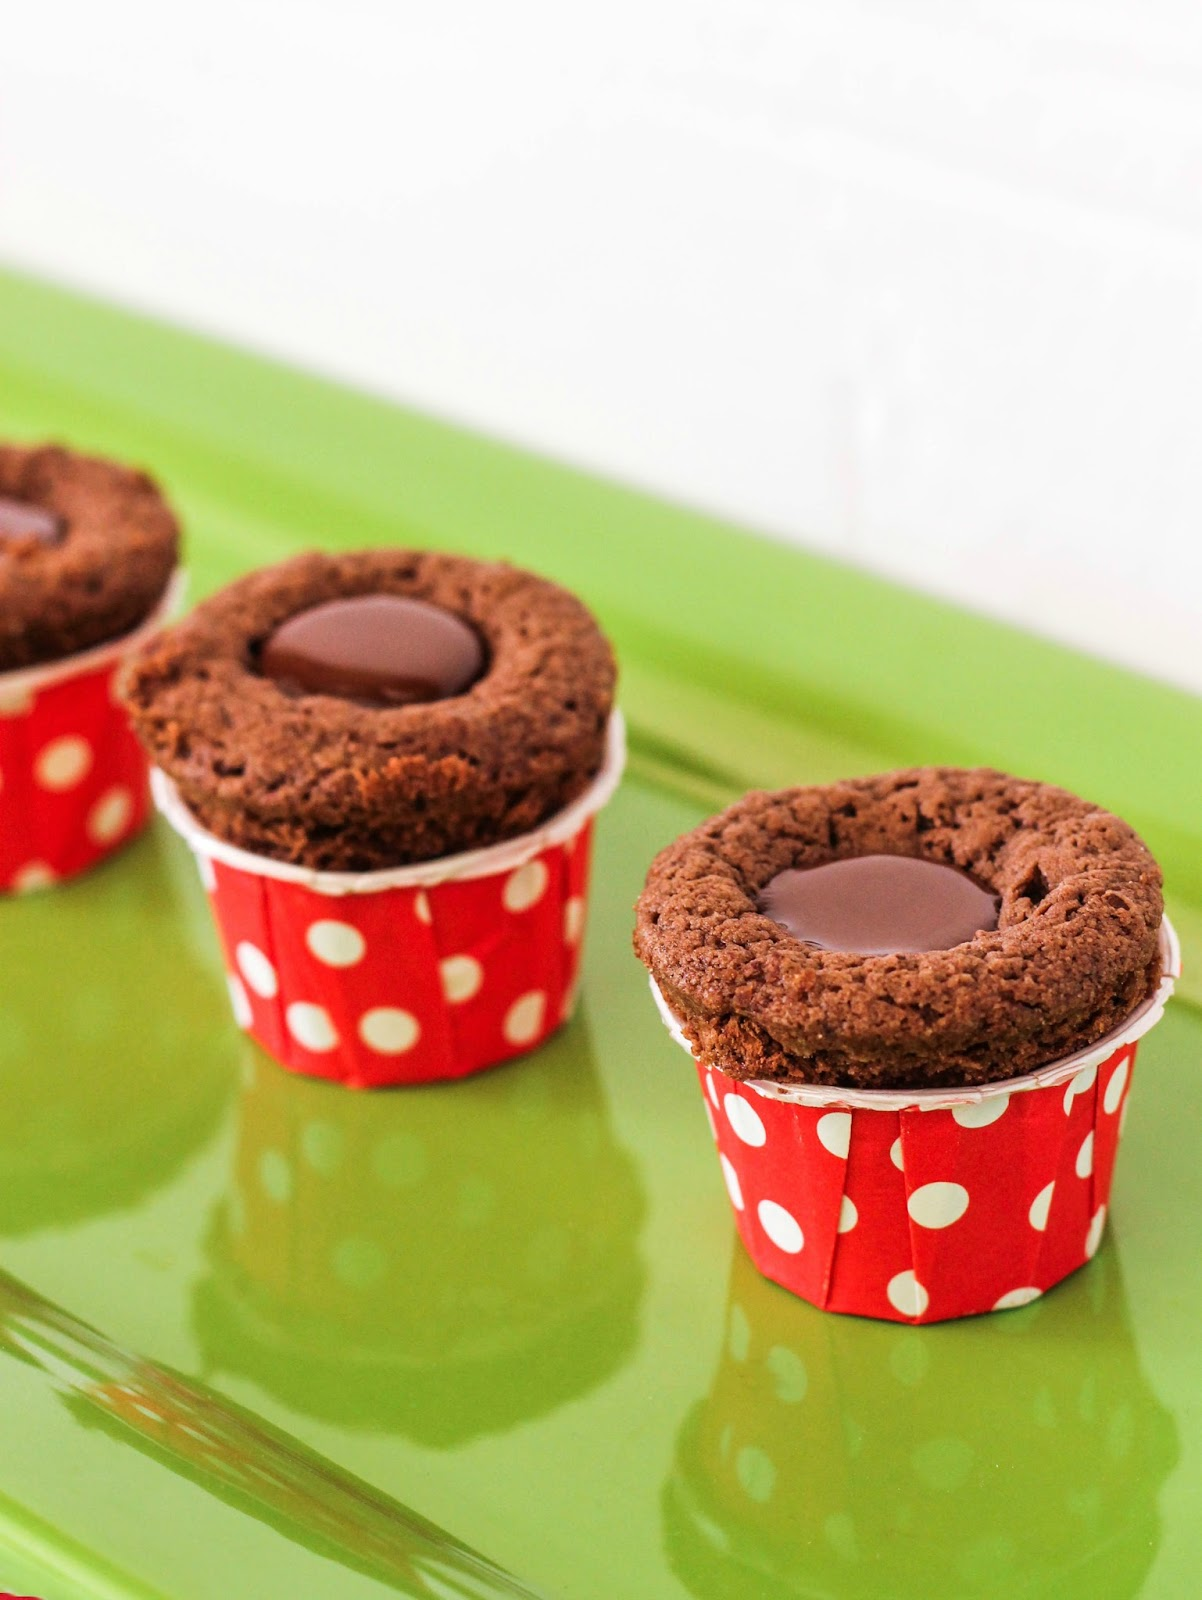 ... chocolate cookies paired with creamy mint truffles. These cookie cups